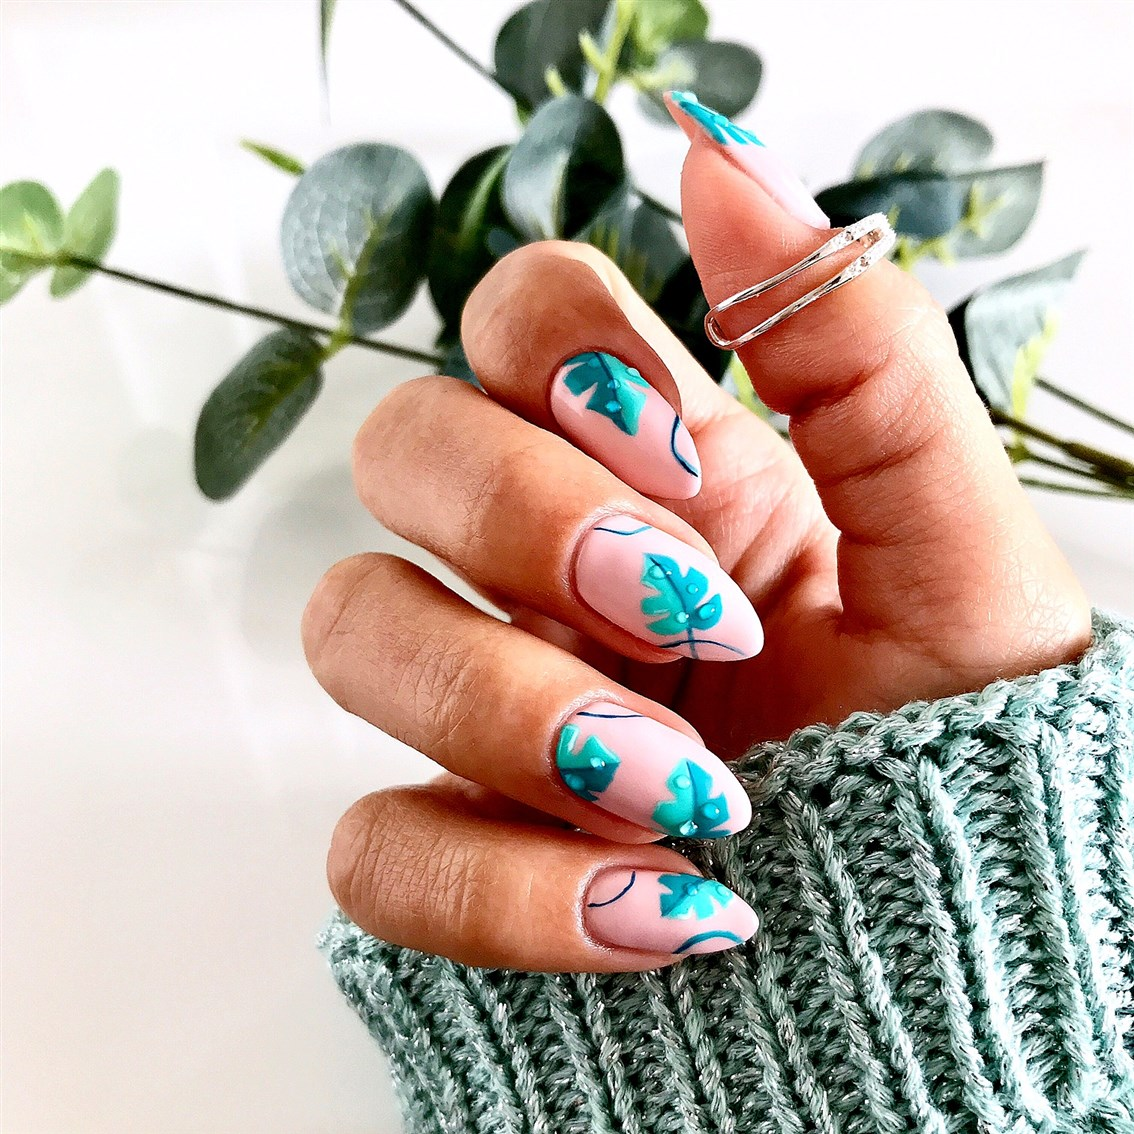 monstera na paznokciach, montera nails, manicure liście